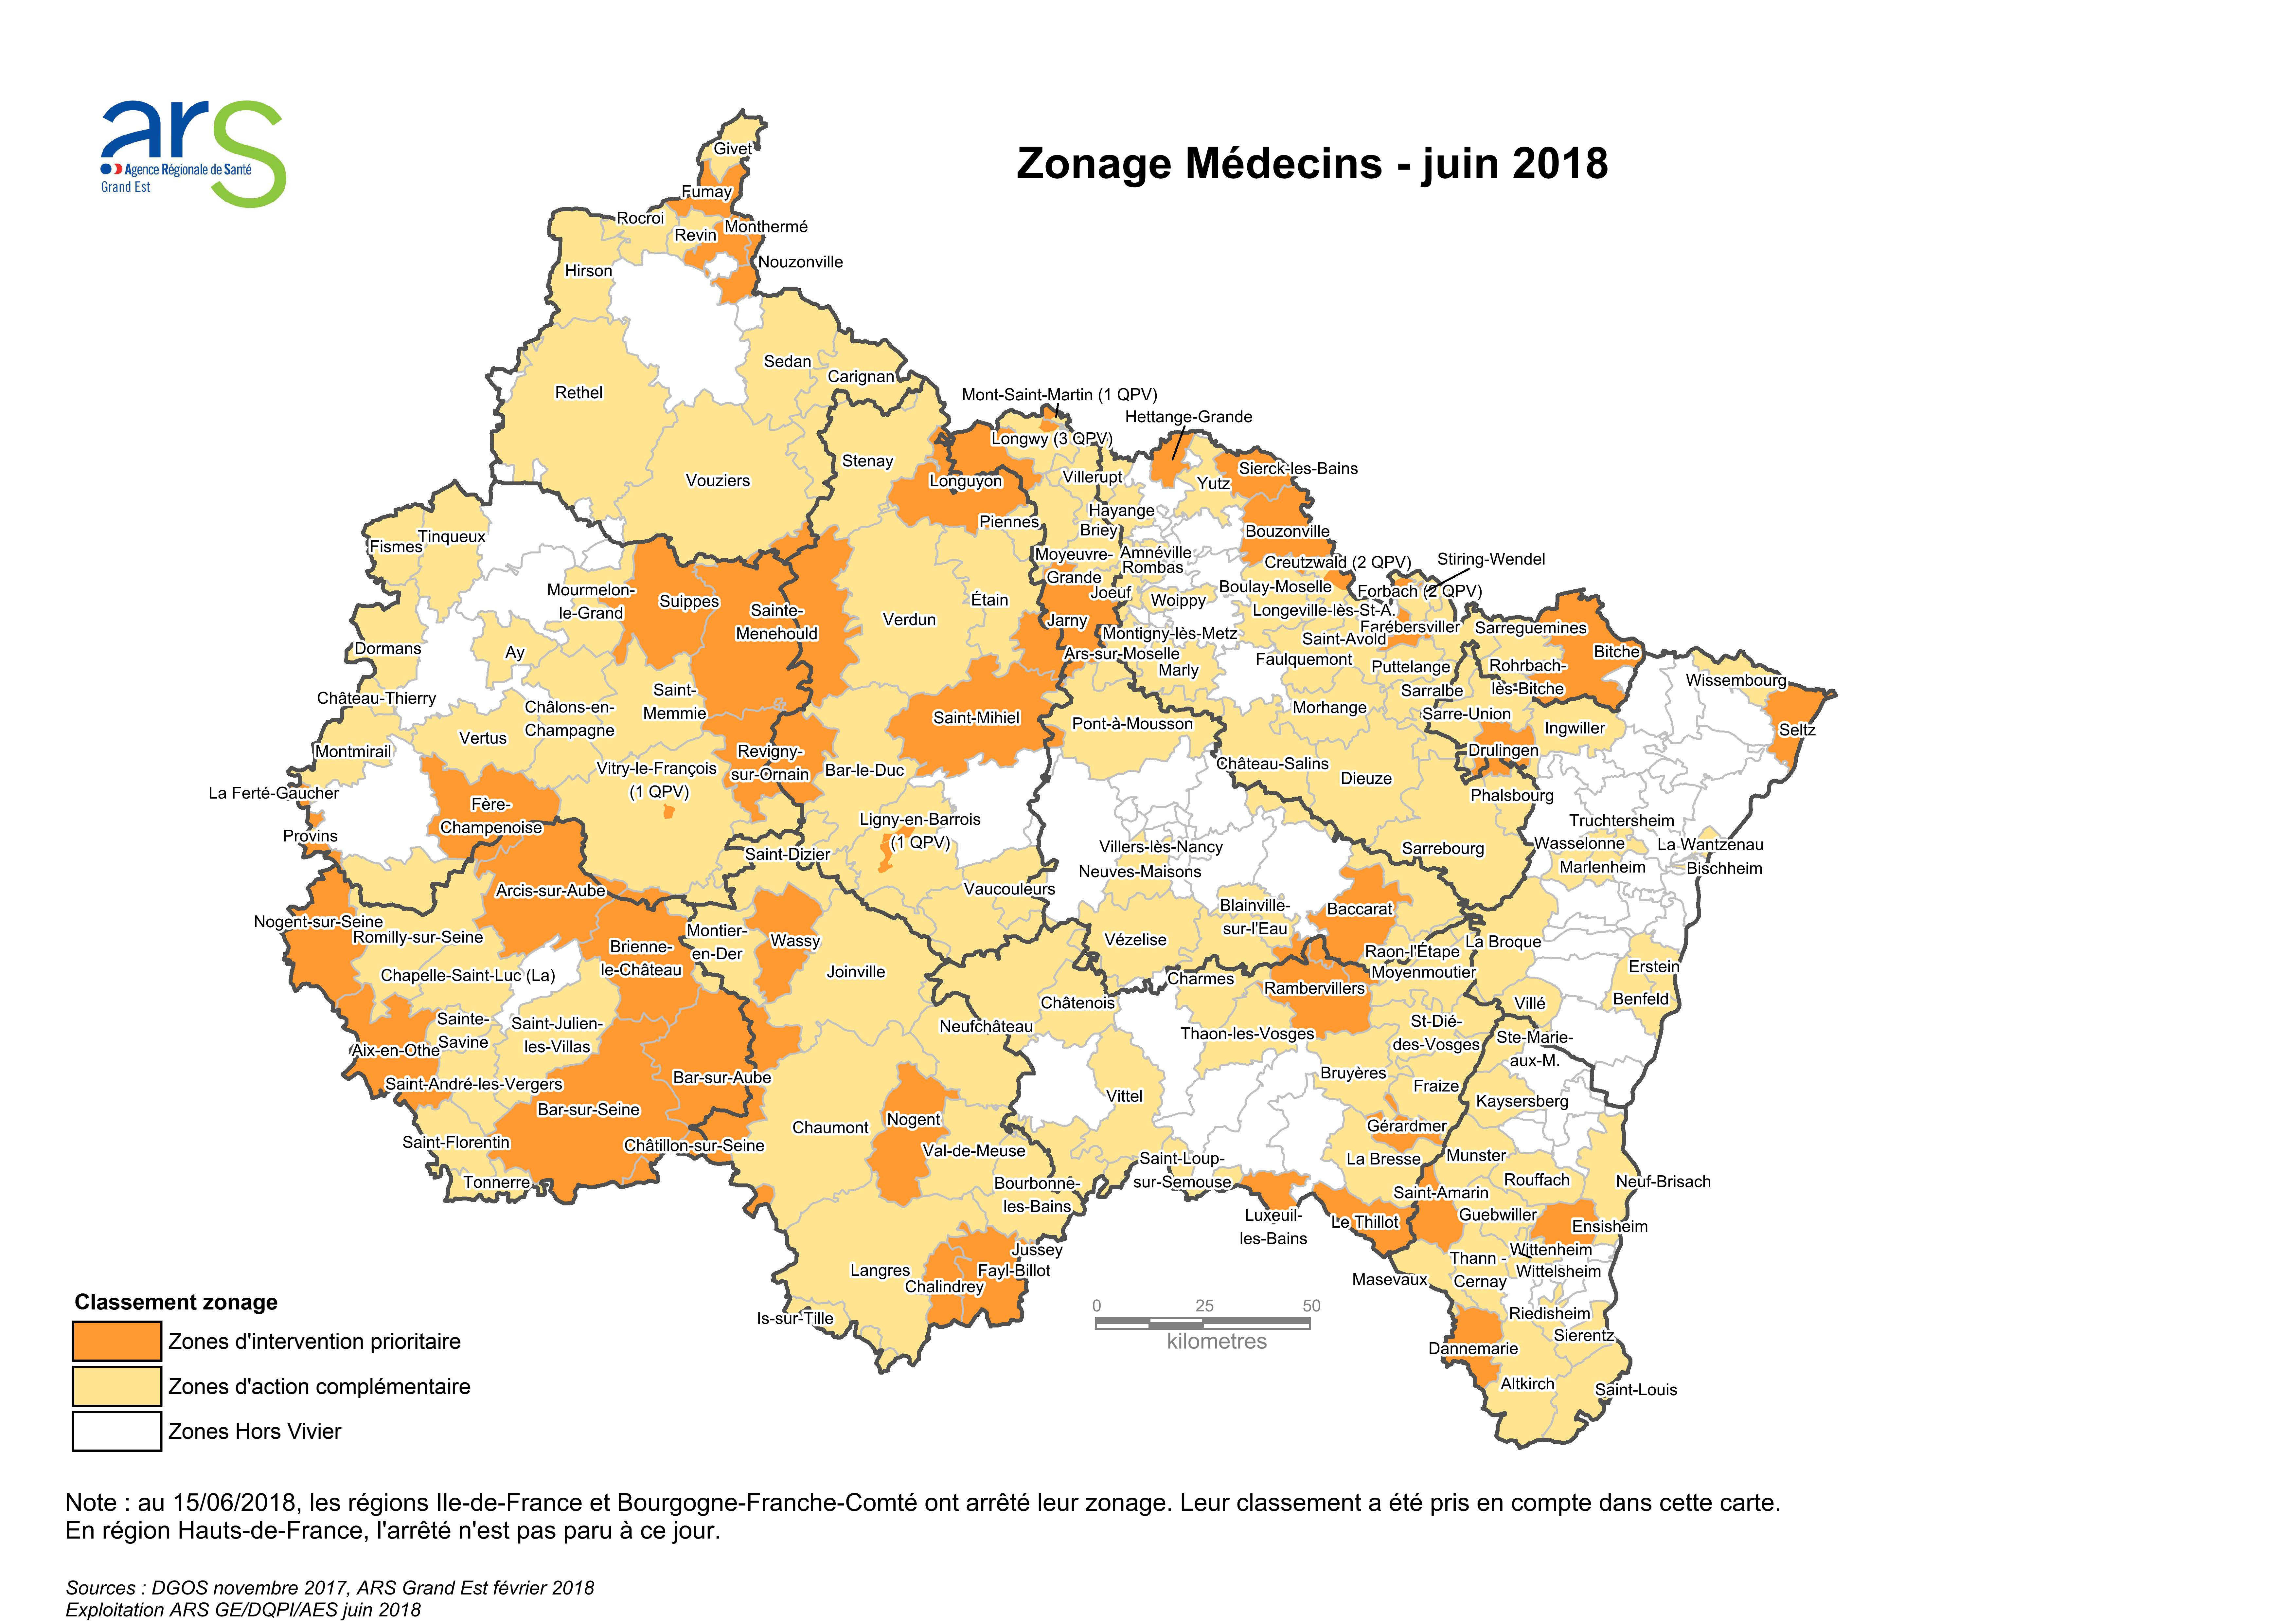 Cartographie relative au zonage médecin 2018